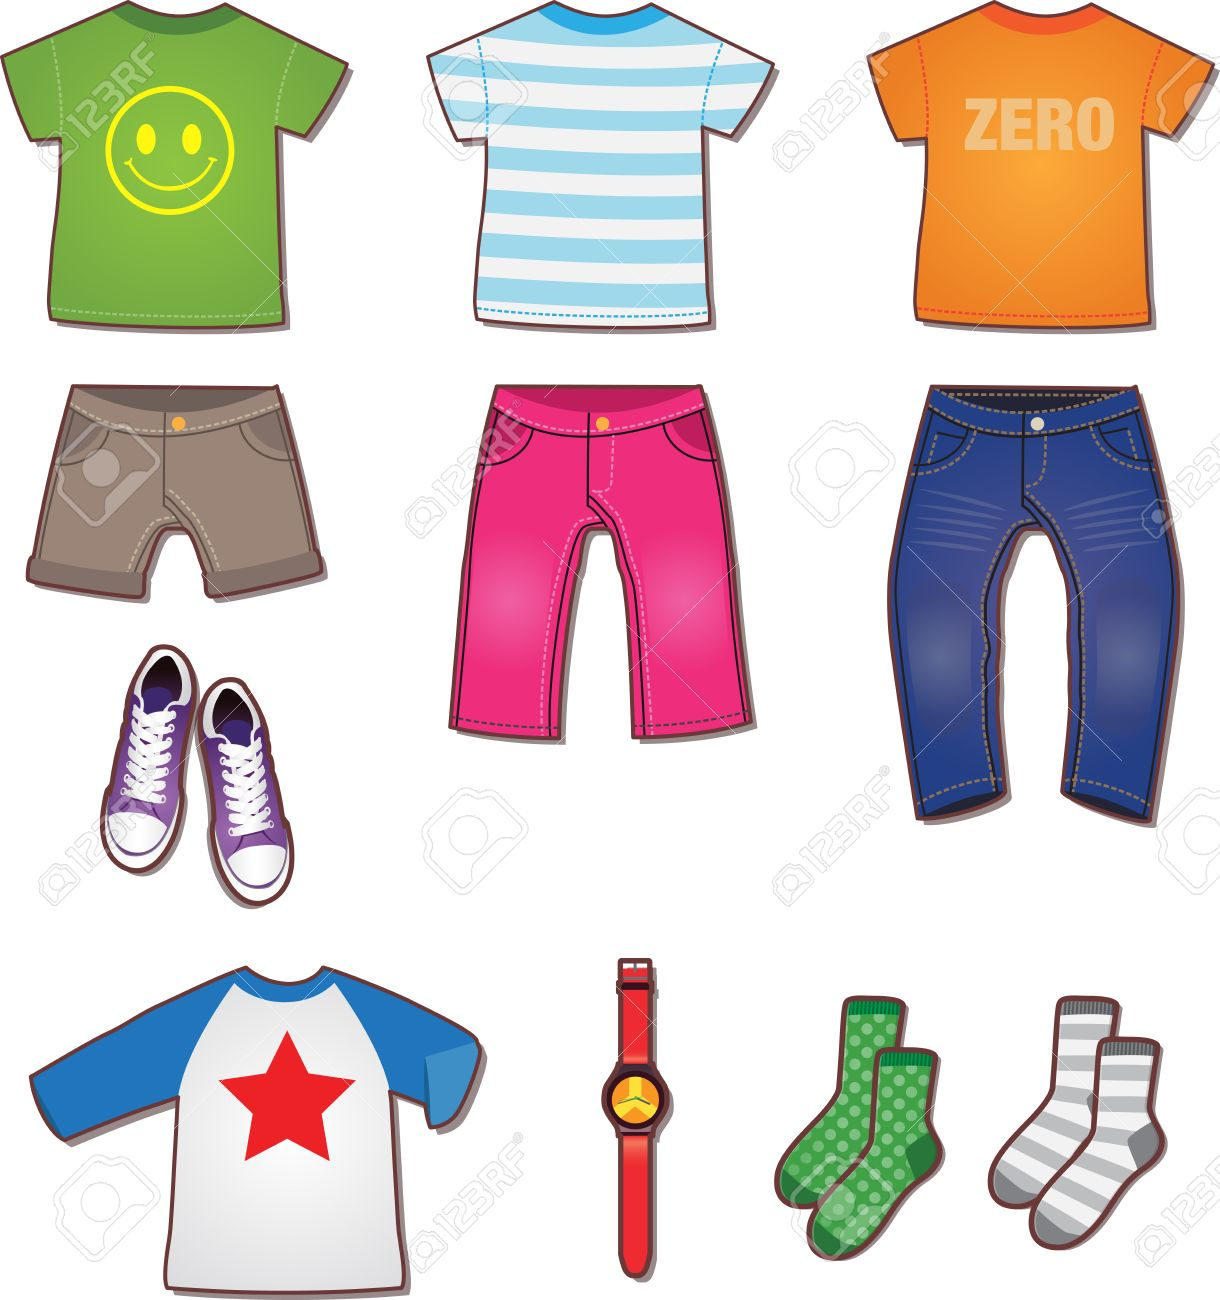 kid clothes clipart free on clipartmag